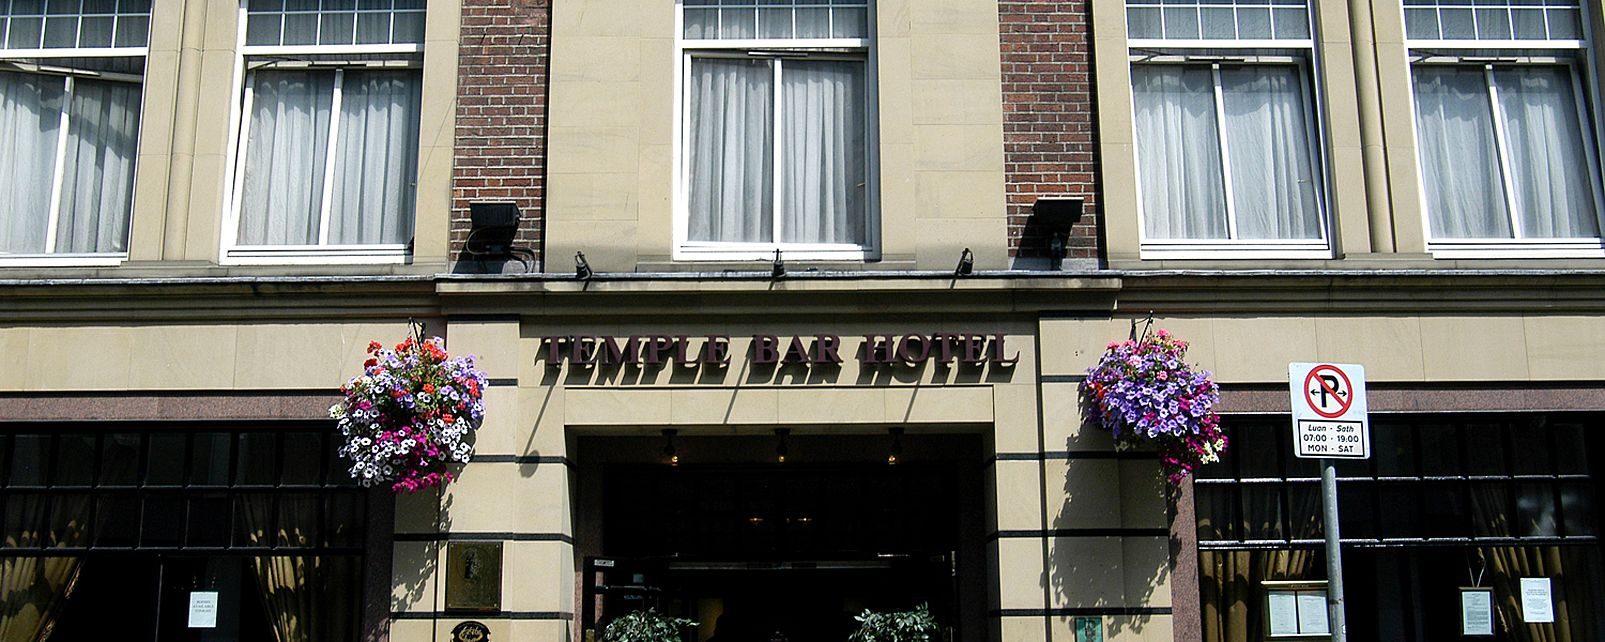 Hôtel Temple Bar Hotel